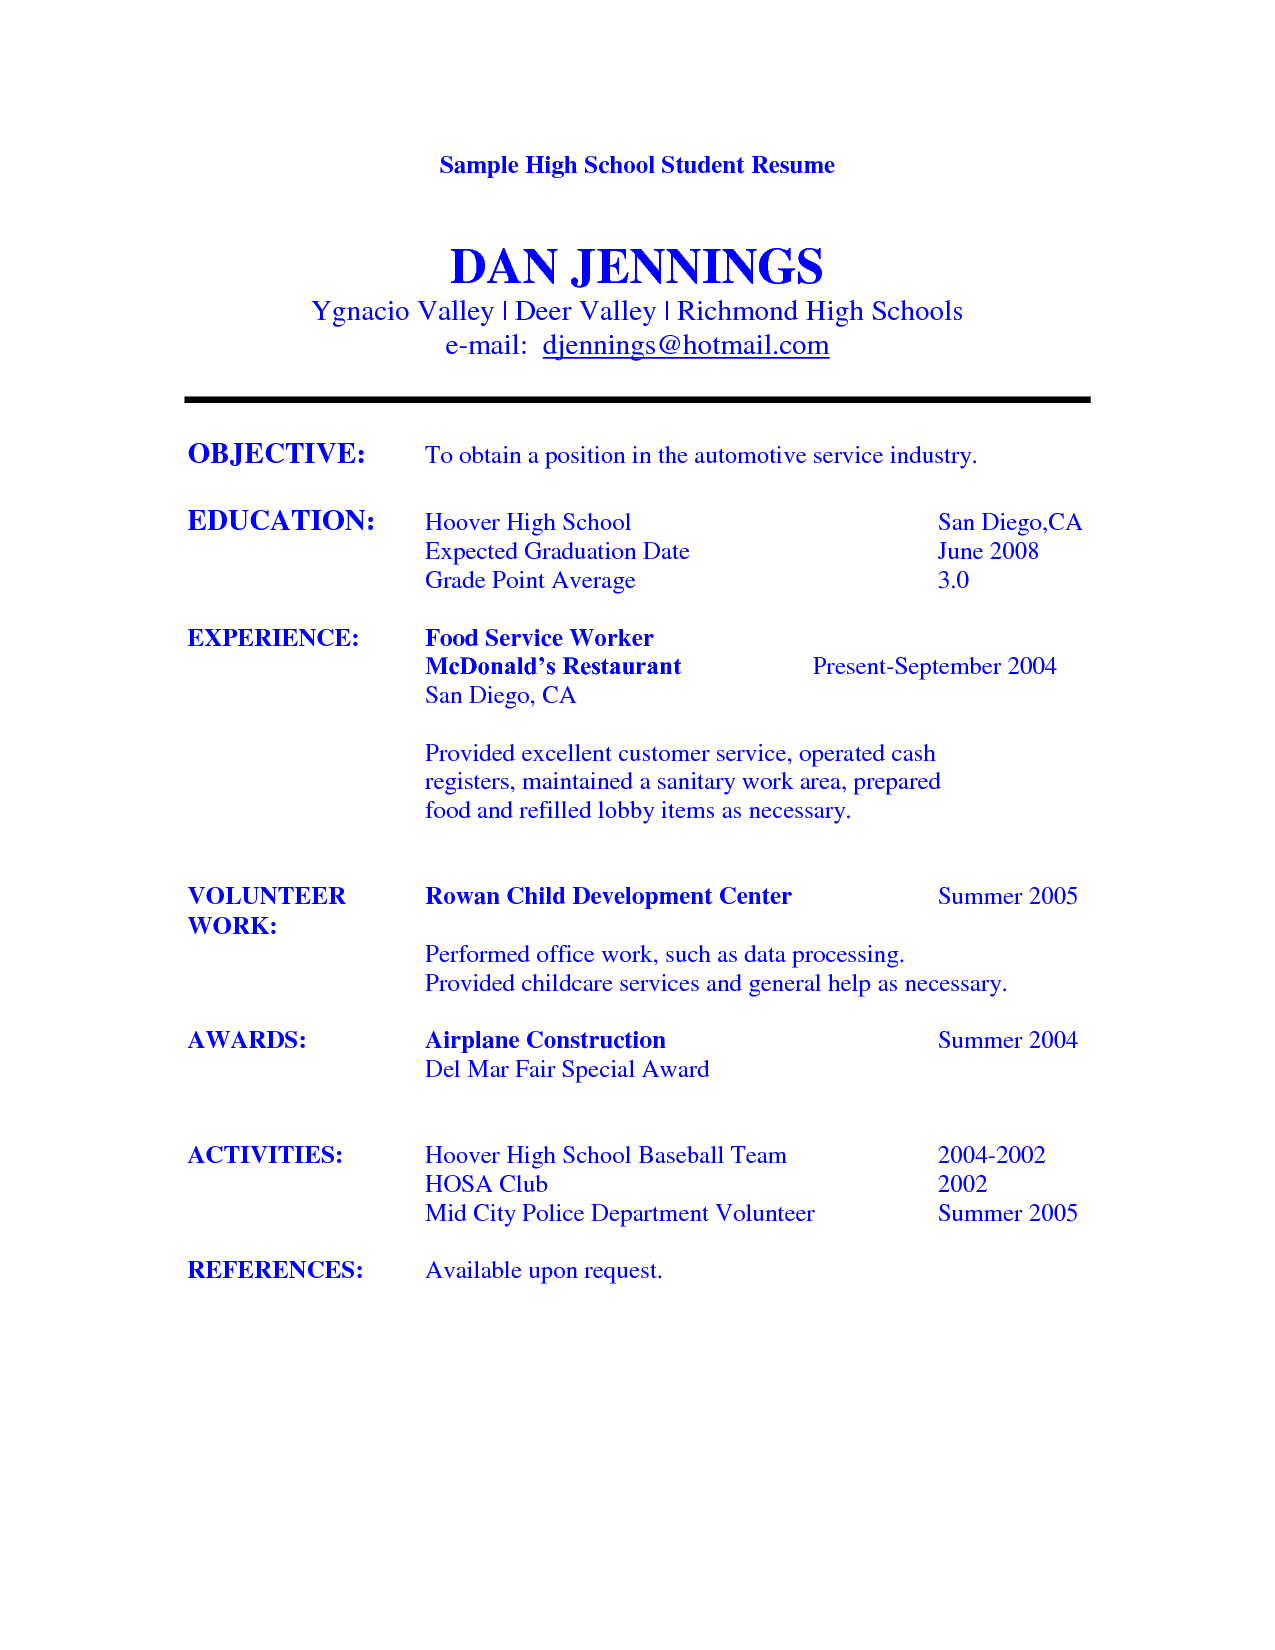 Resume How To Write A Resume High School Student Template sample resume for high school student 2017 student